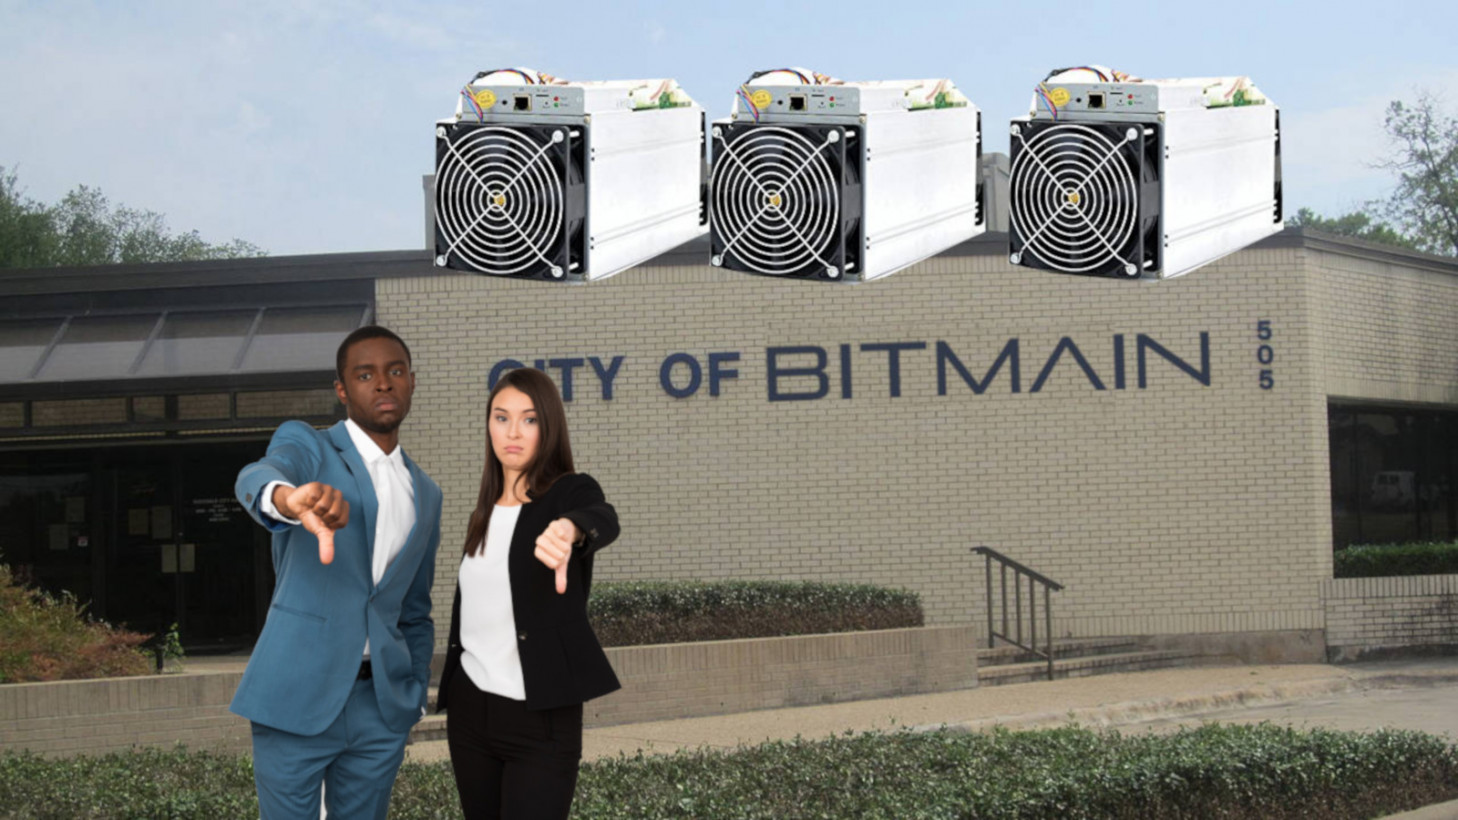 7 months after Hash Wars, Bitmain's BTC.com appears to mine Bitcoin SV